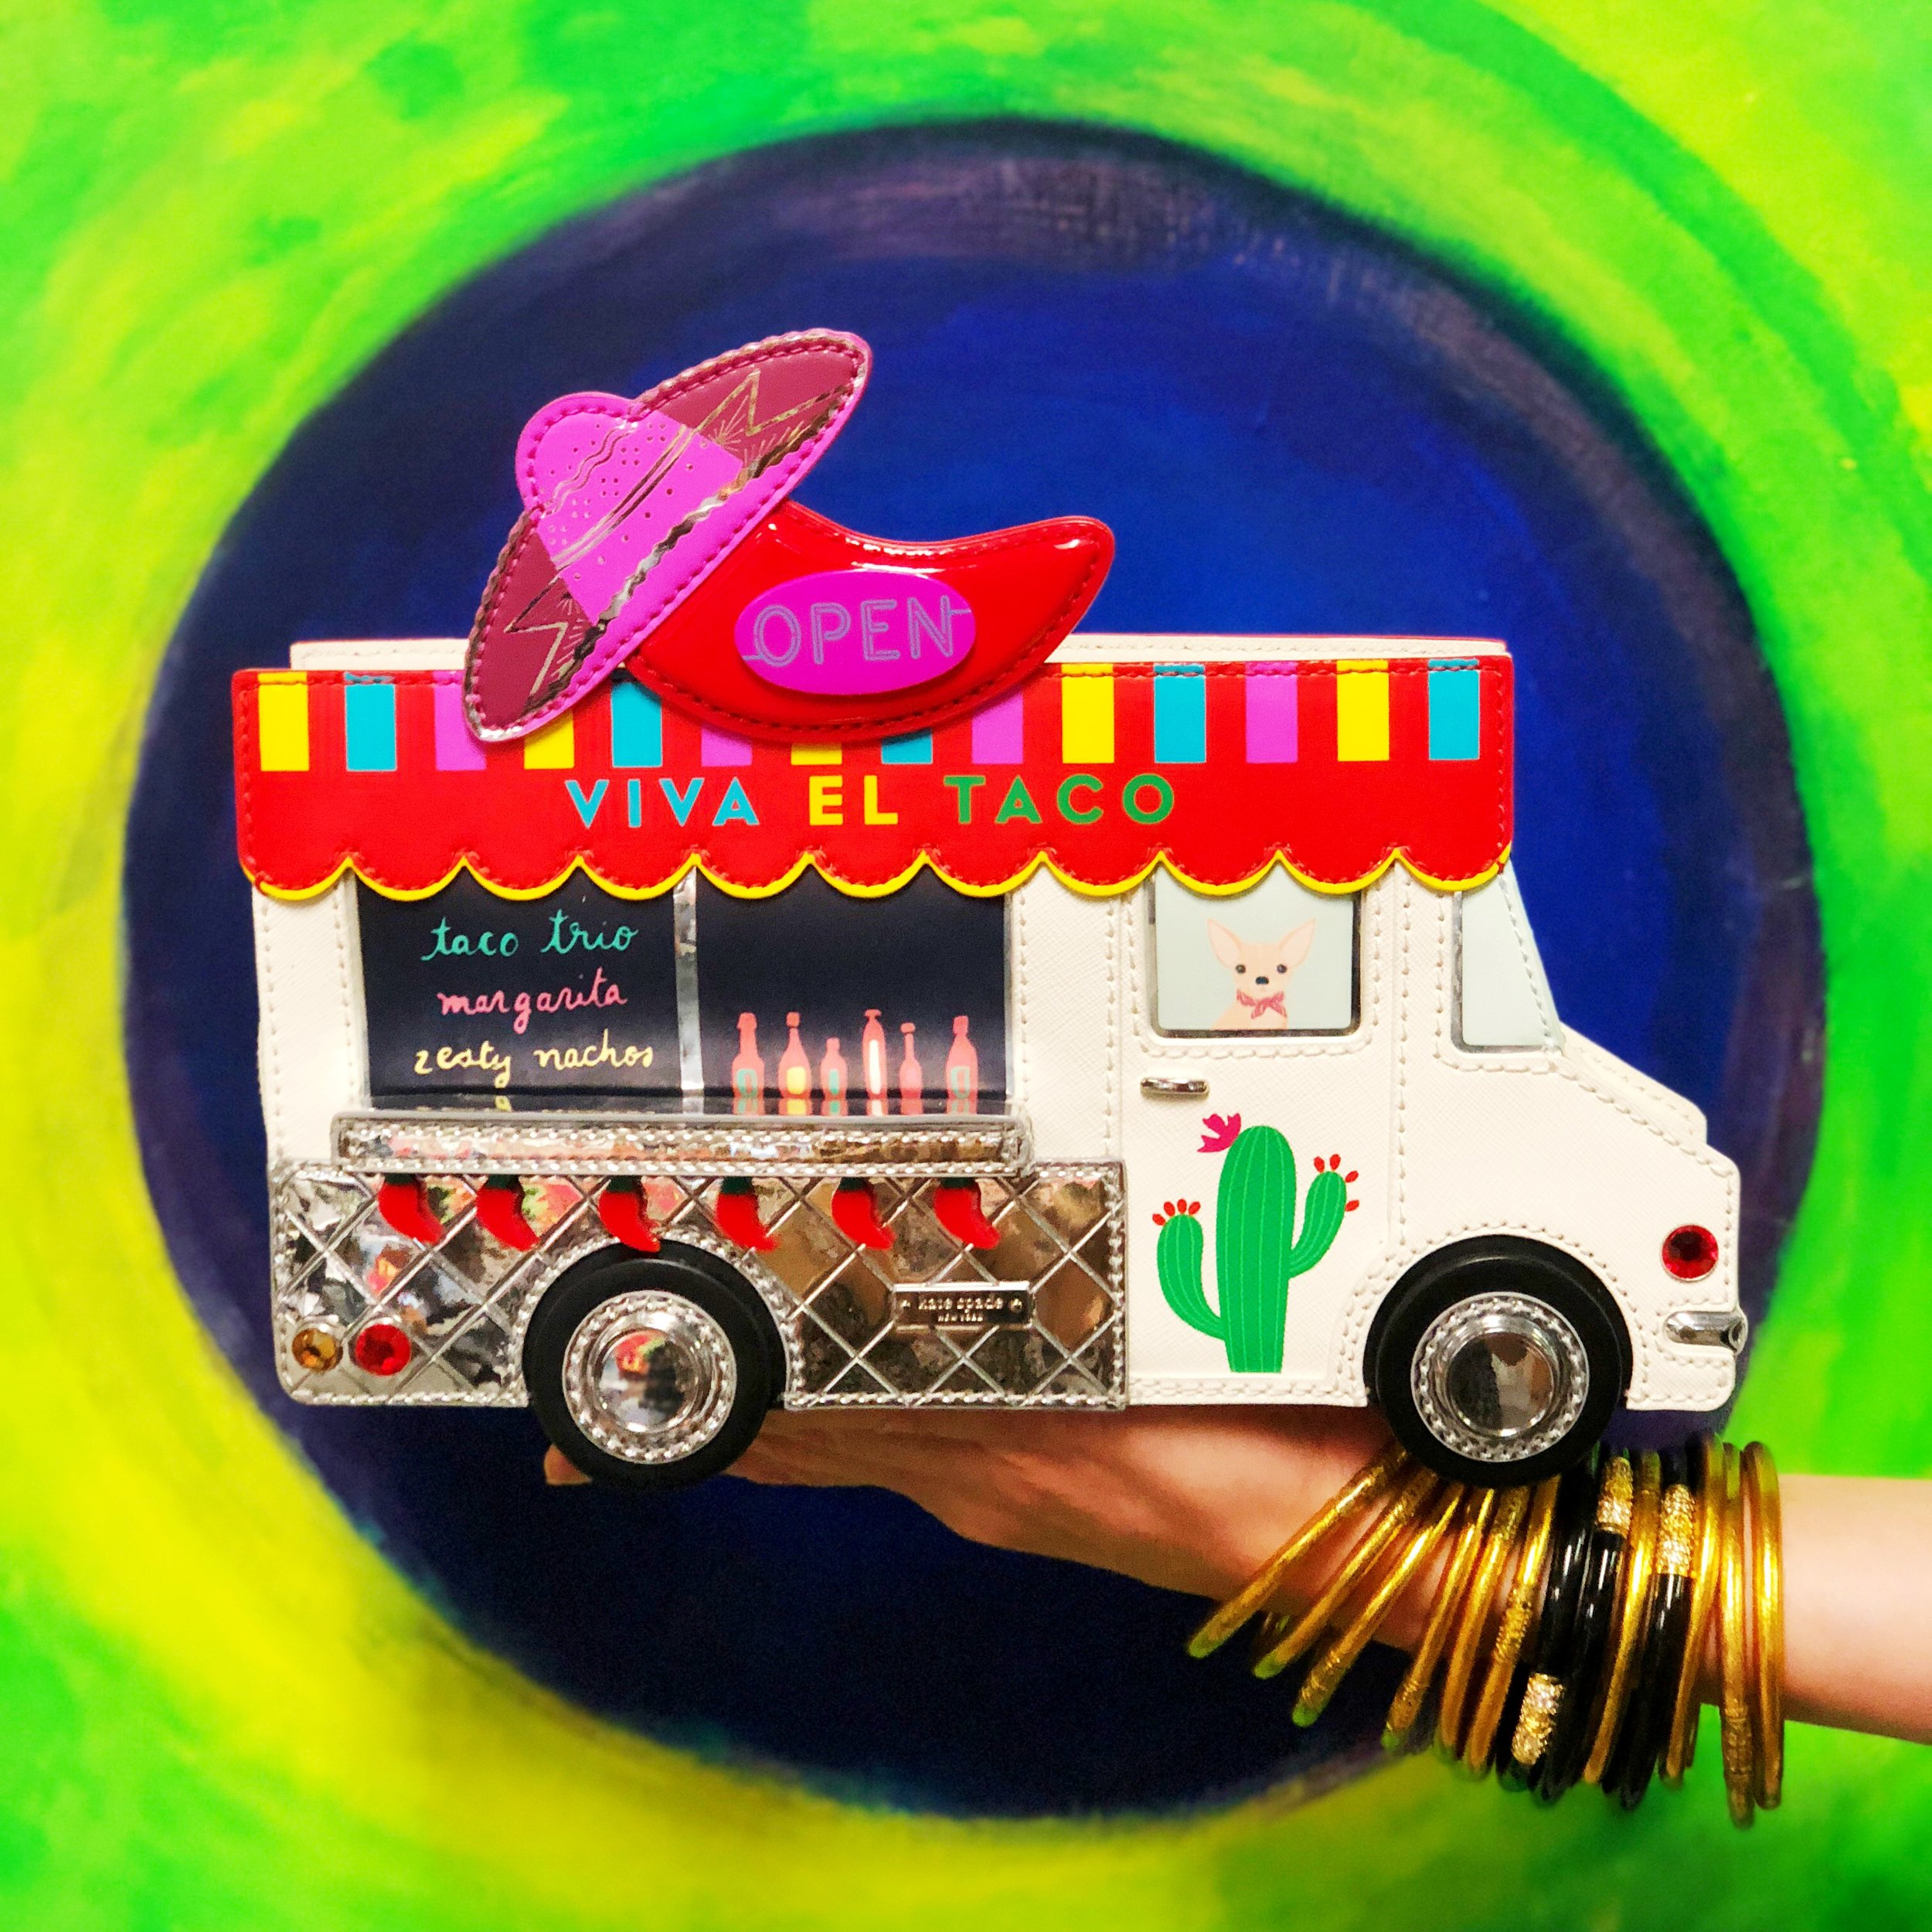 2-in-1: Jessica's Kate Spade taco truck handbag is an ironic tribute to Kate's colorful aesthetic and Anthony's adventurous foodie spirit.